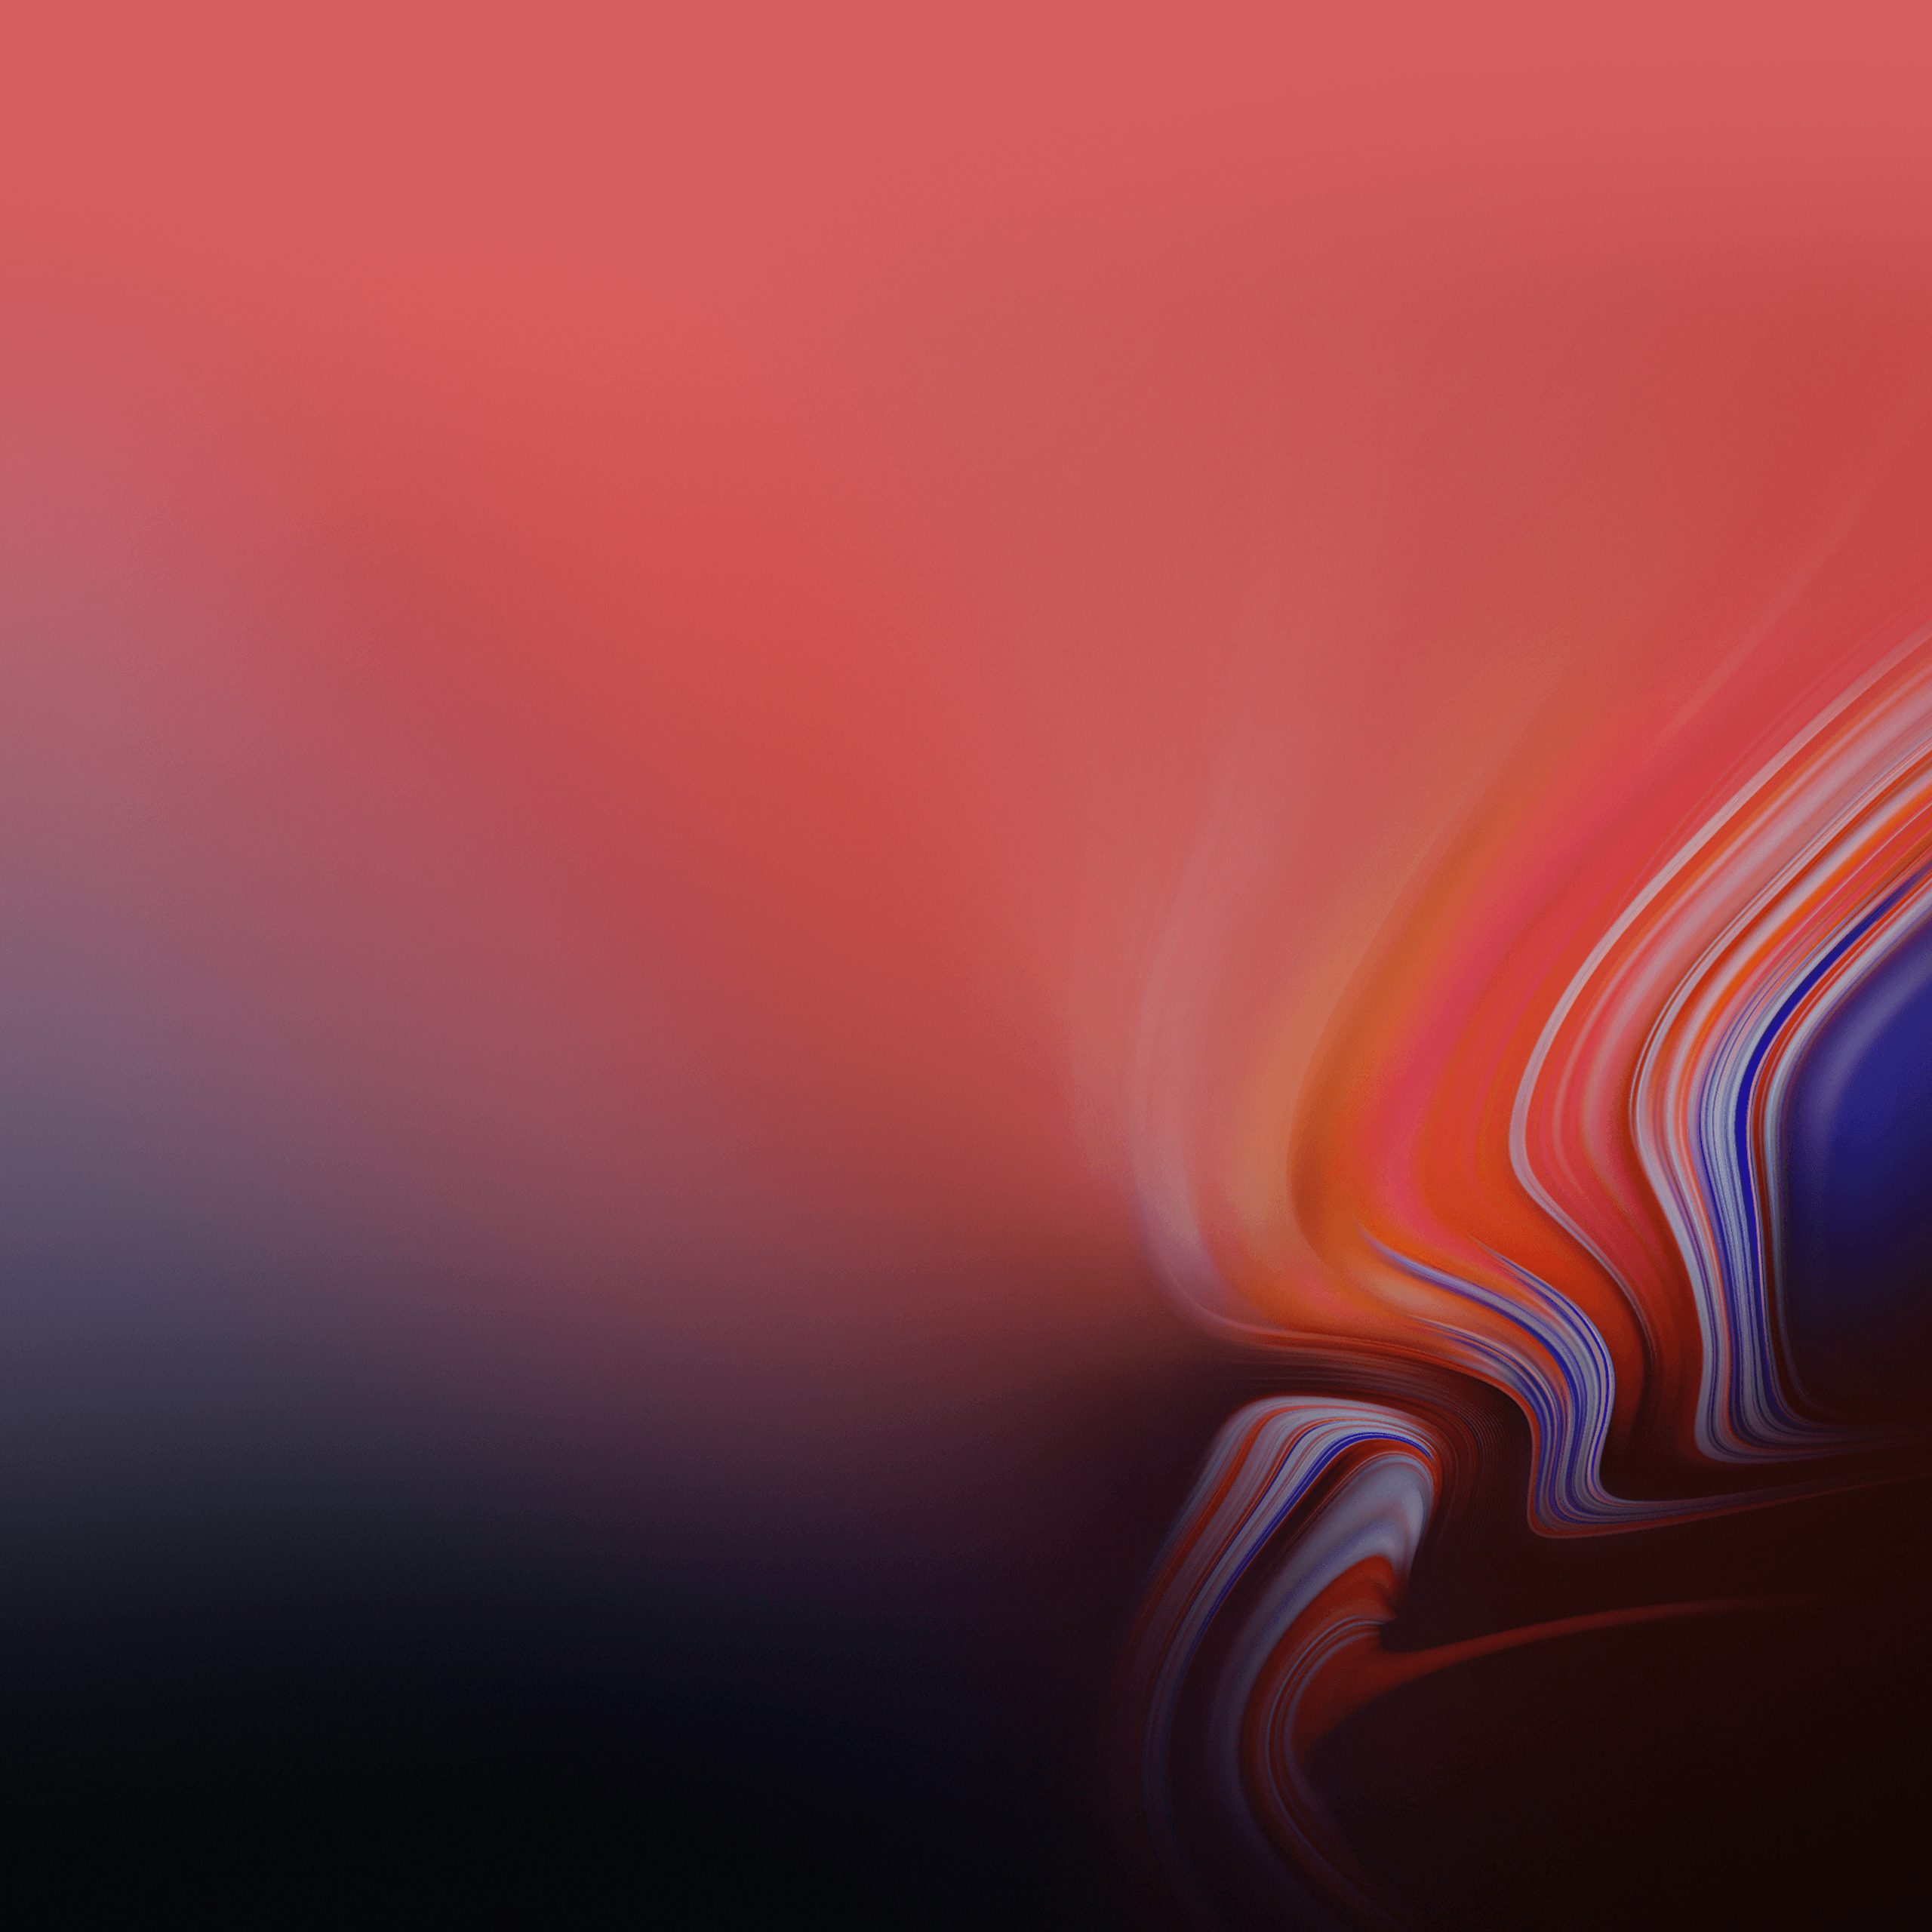 Wallpapers Waves, Gradient, Red, Samsung Galaxy Tab S4, Stock, HD